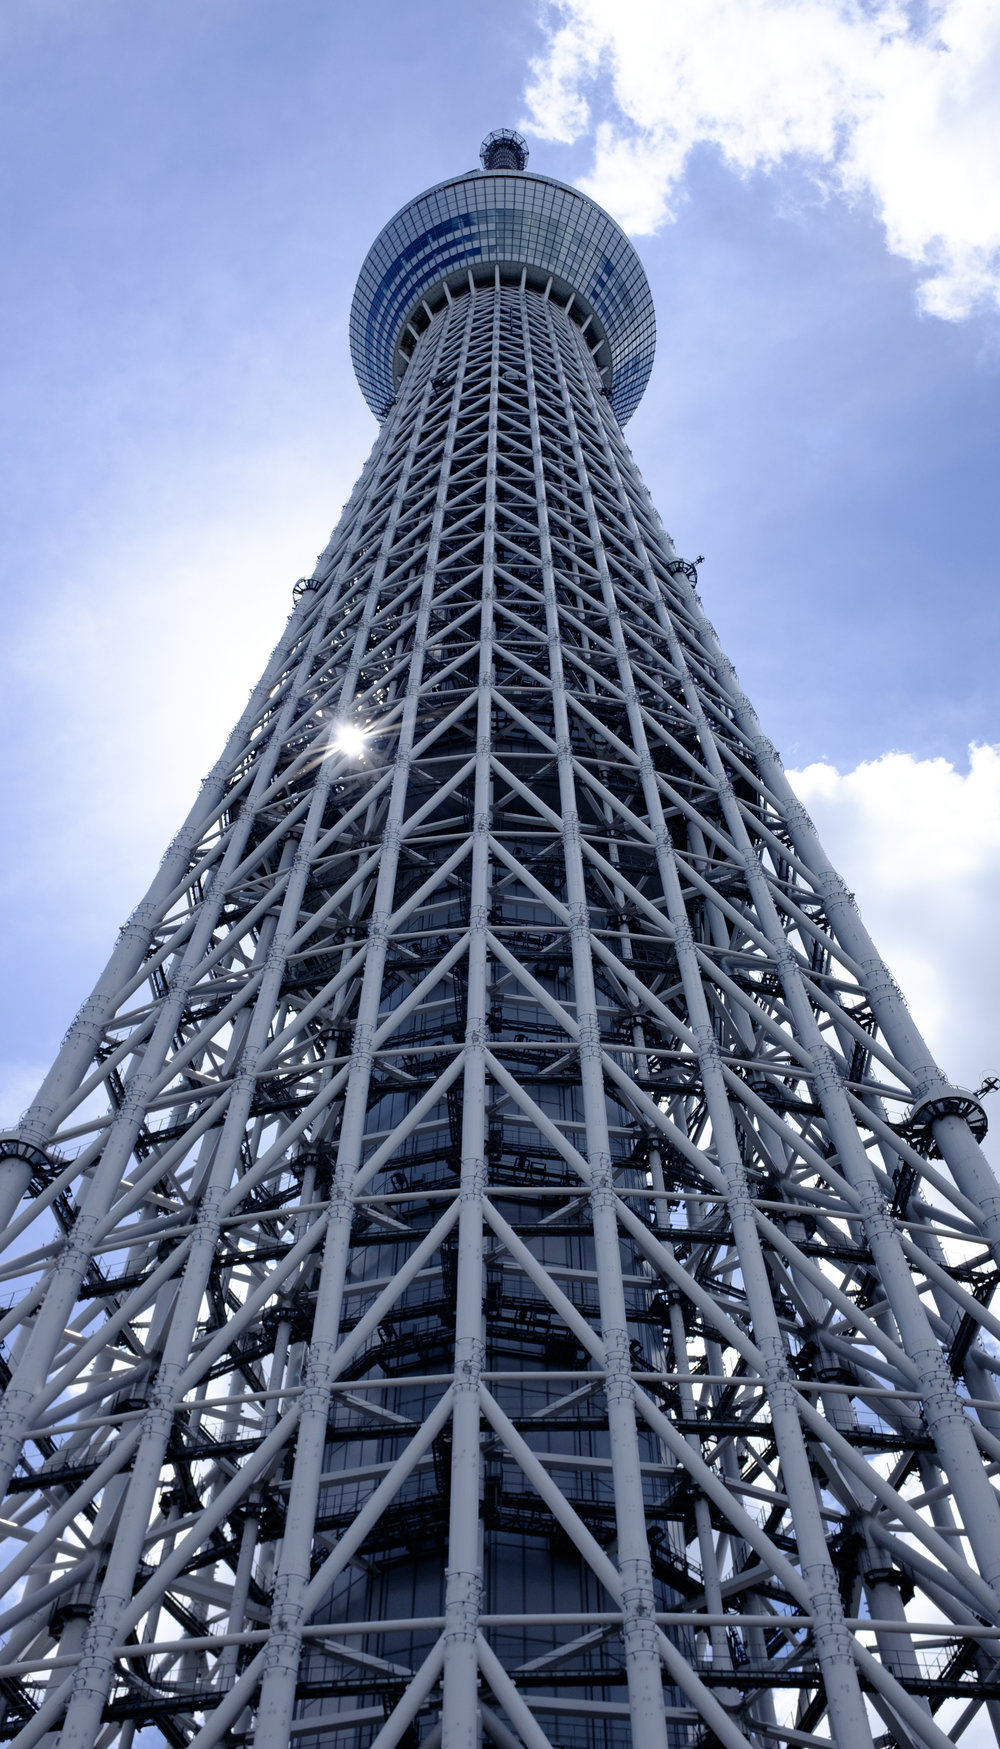 Looking up at the Tokyo Skytree - This was from a separate trip earlier that year when I bought the X100F